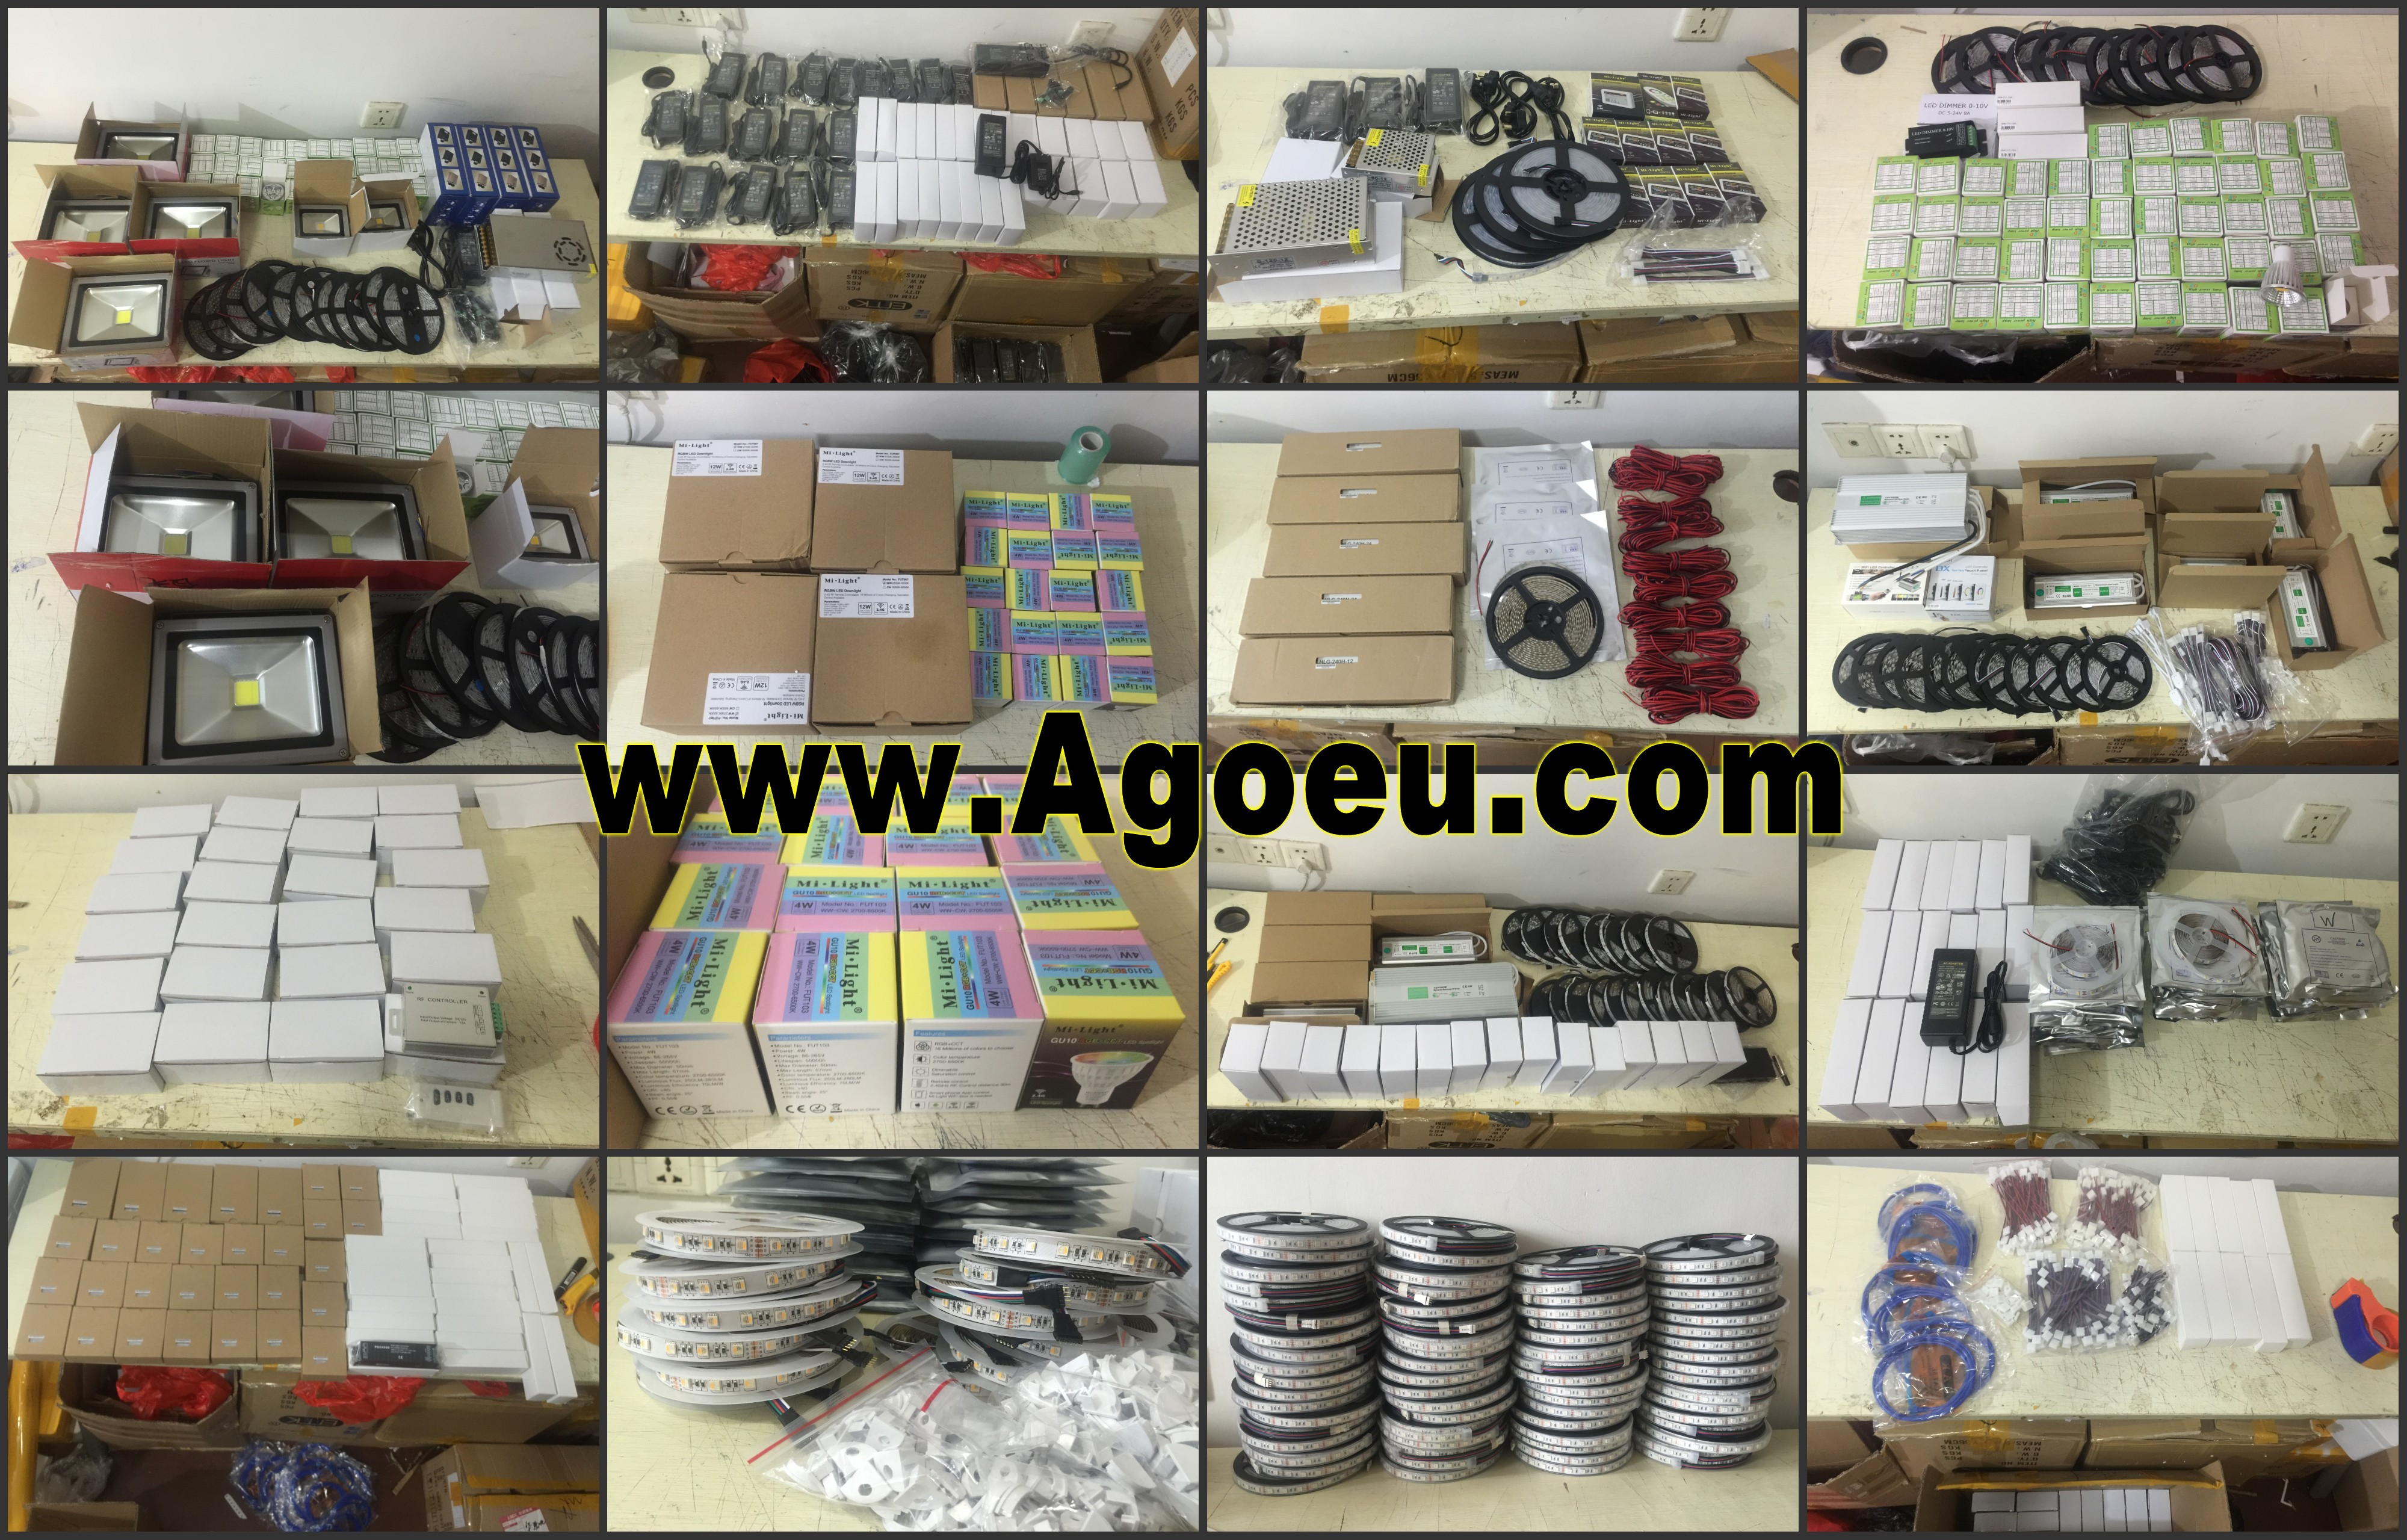 shipping_parcrls_from_agoeu_LED_lights_controllers_express_tracking_numbers